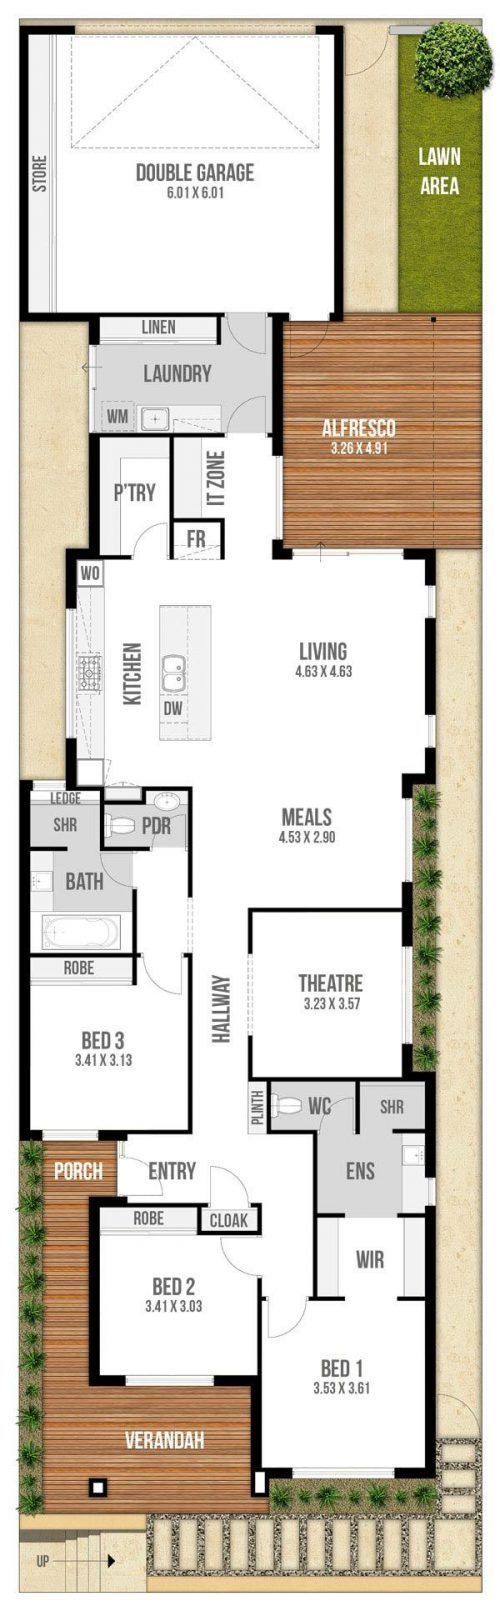 52 best house floor plans by boyd design images on for Rear access home designs